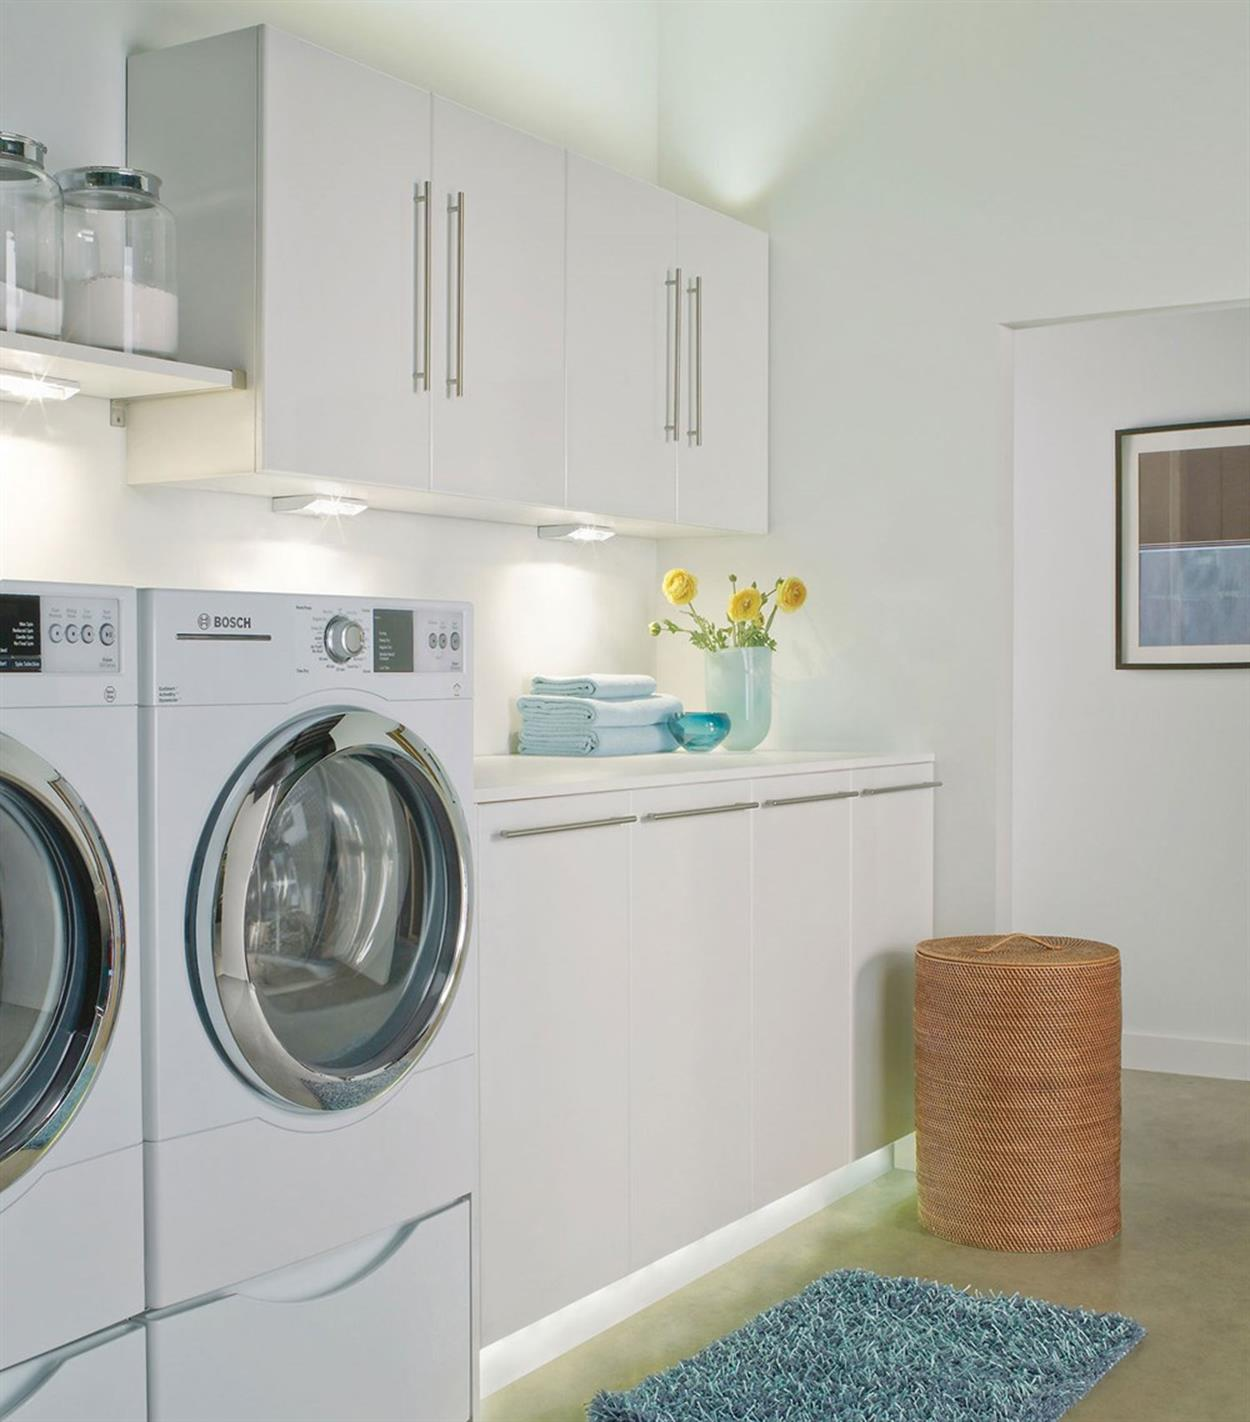 Light Fixtures Ideas For Laundry Room 8